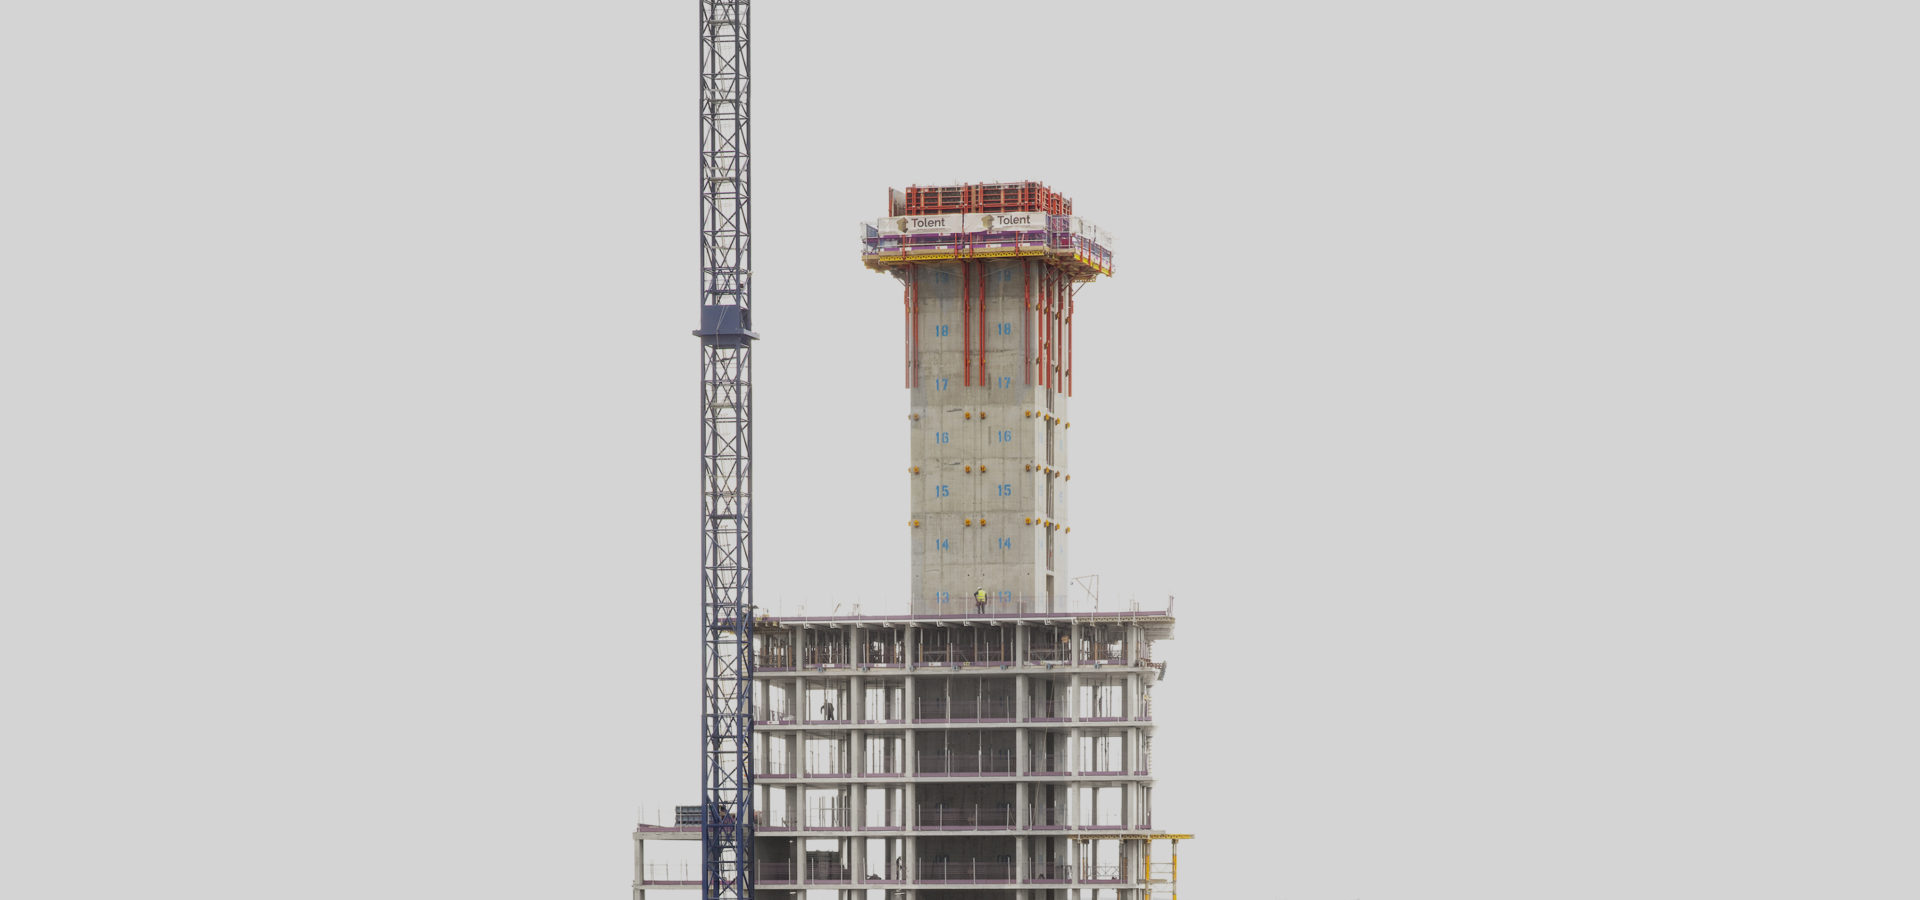 Rutherford Street Prs Newcastle City Centre Hadrians Tower Under Construction Hh